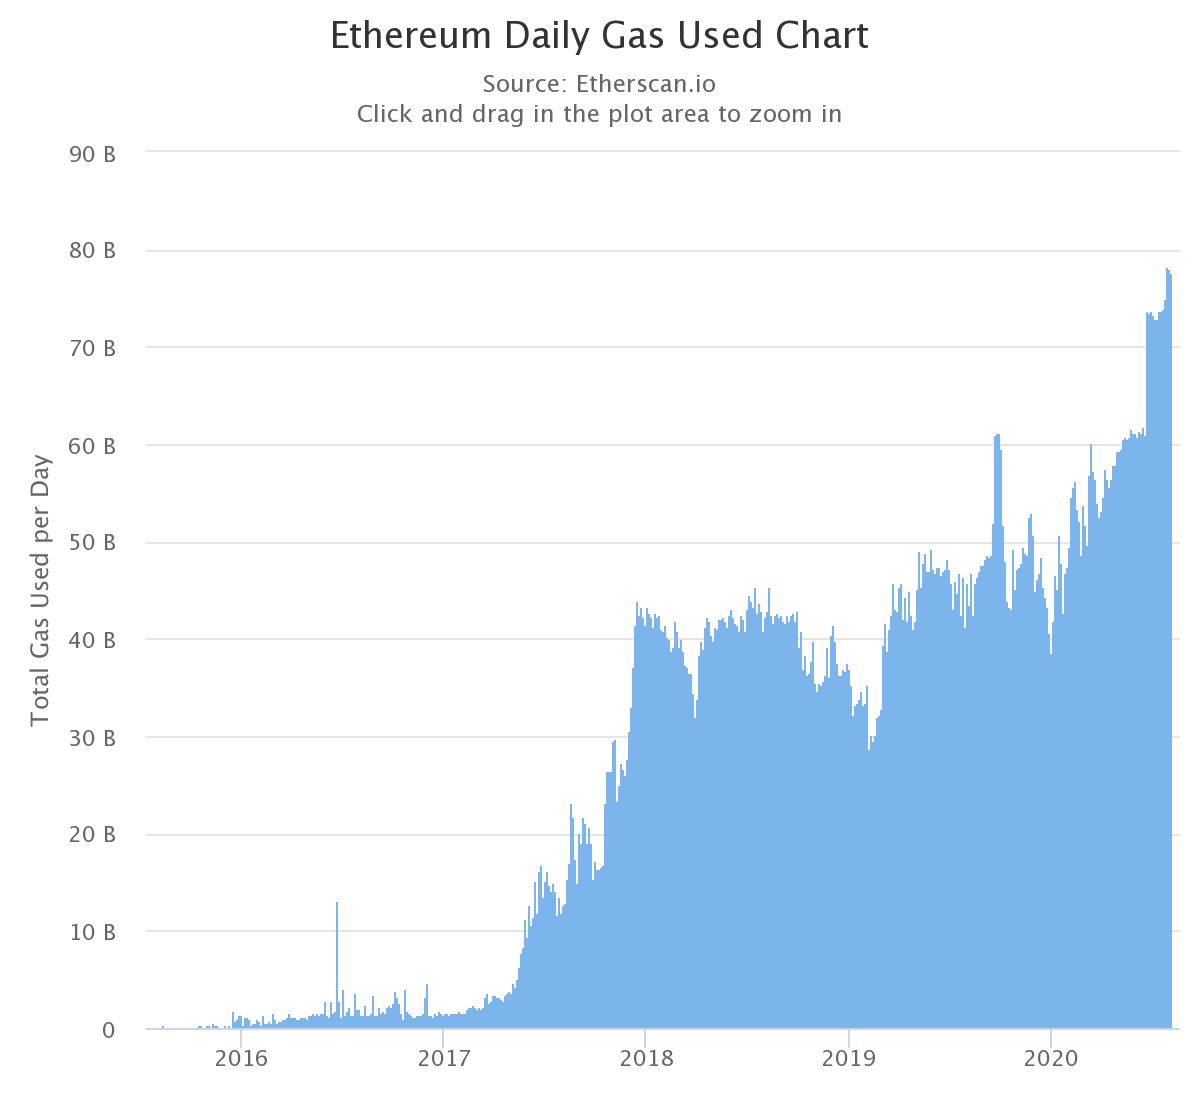 Ethereum daily gas used chart by Etherscan.io